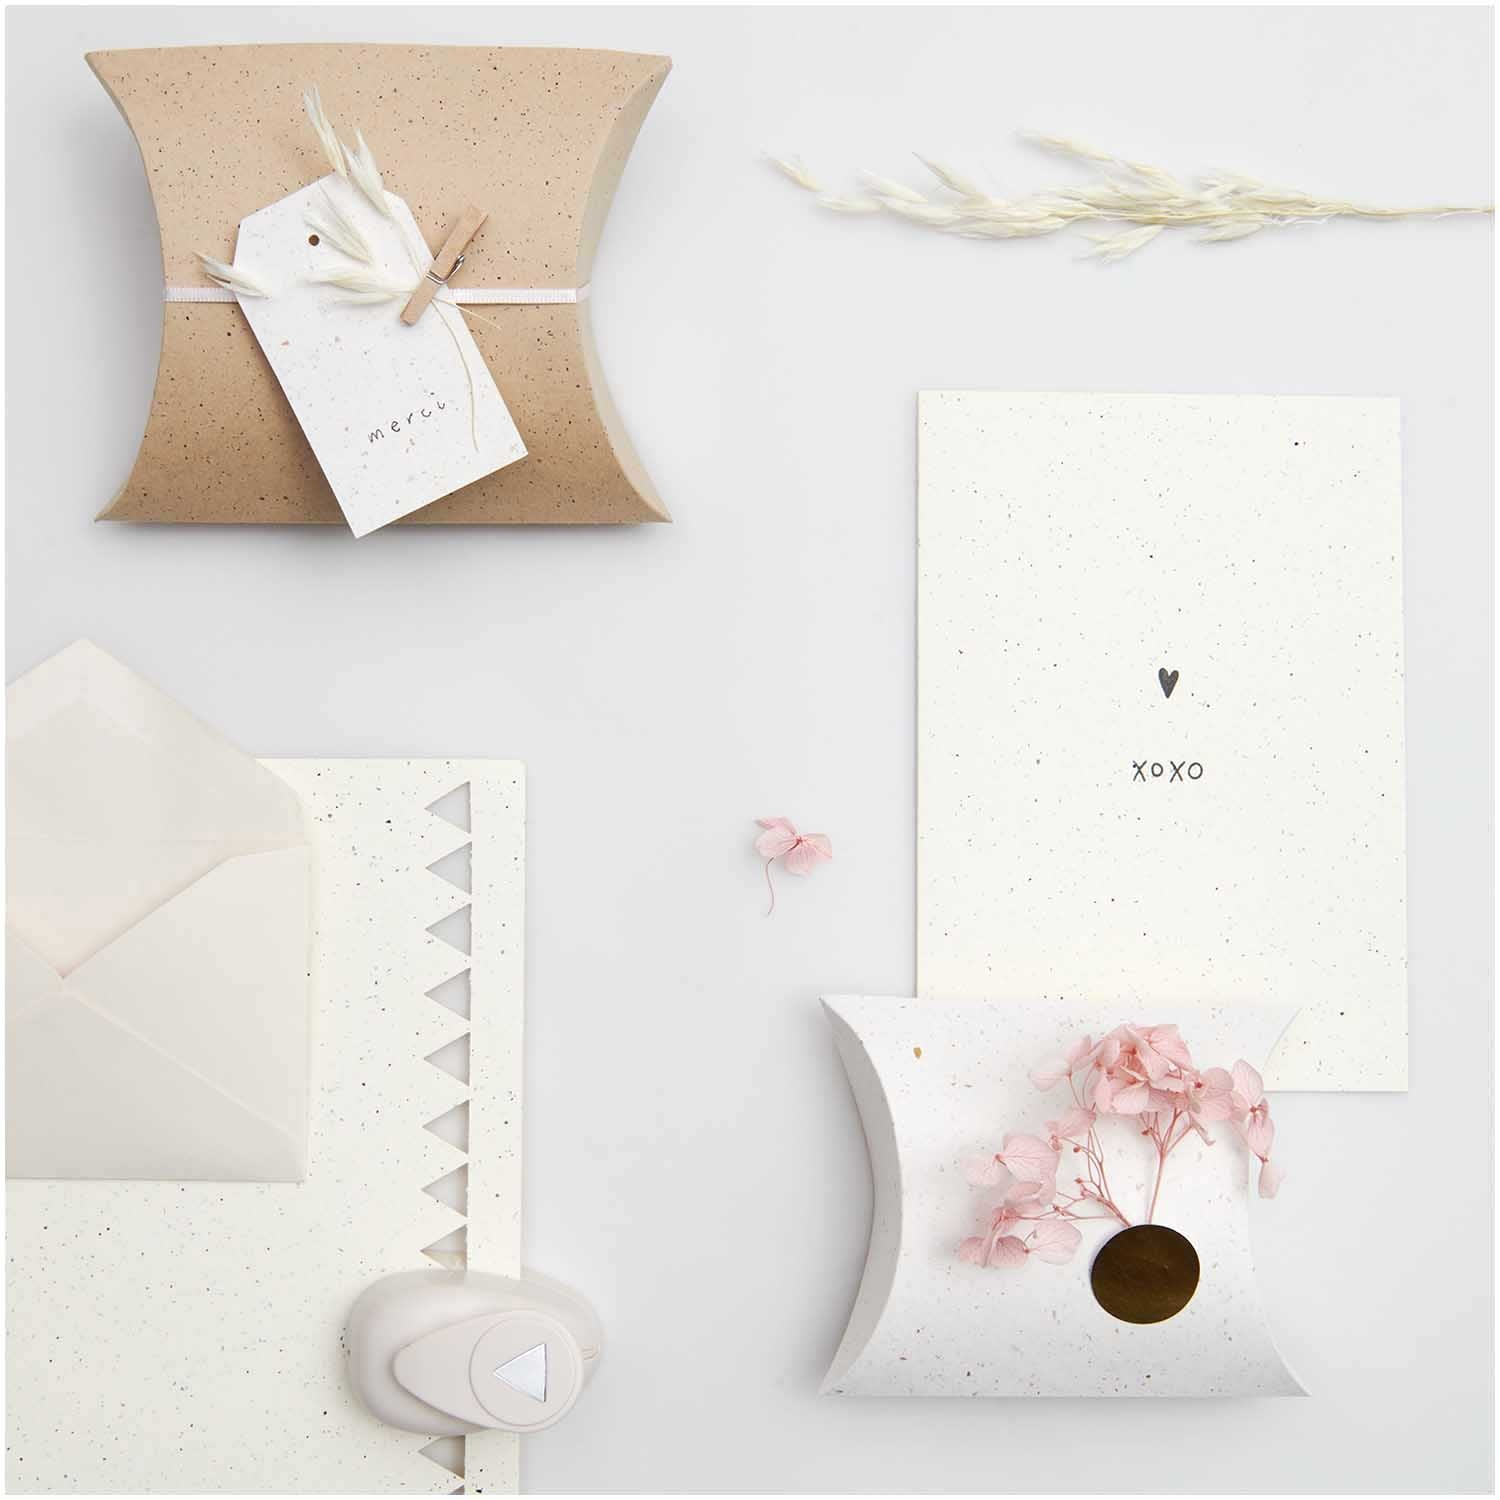 Rico NAY Card set B6, recycled paper offwhite, 10 cards, 10 envelopesFSC MIX